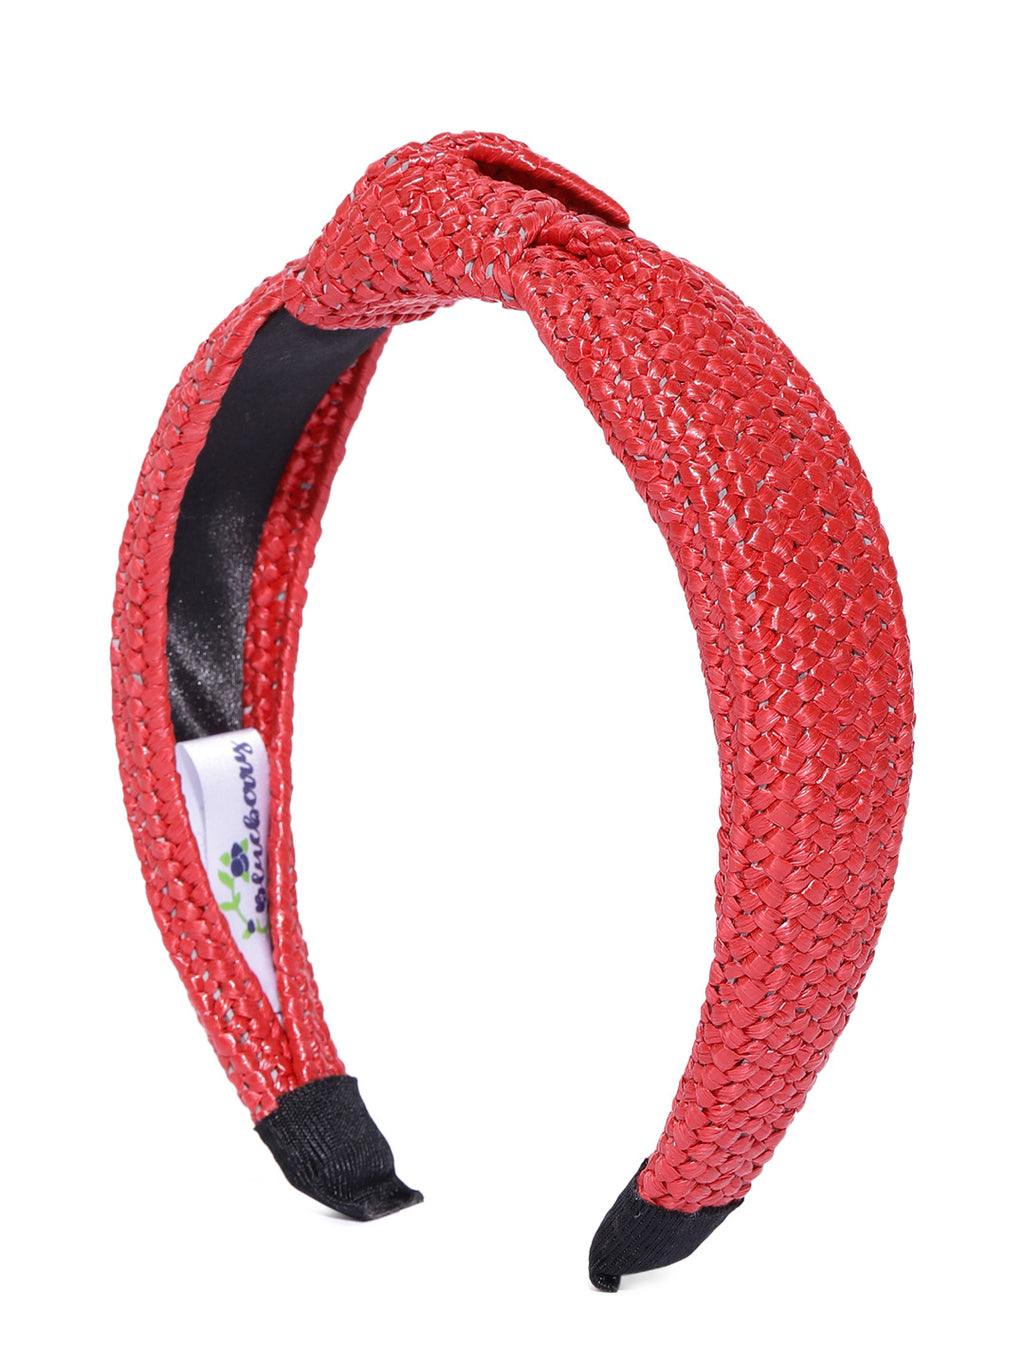 Blueberry red jute knot hair band